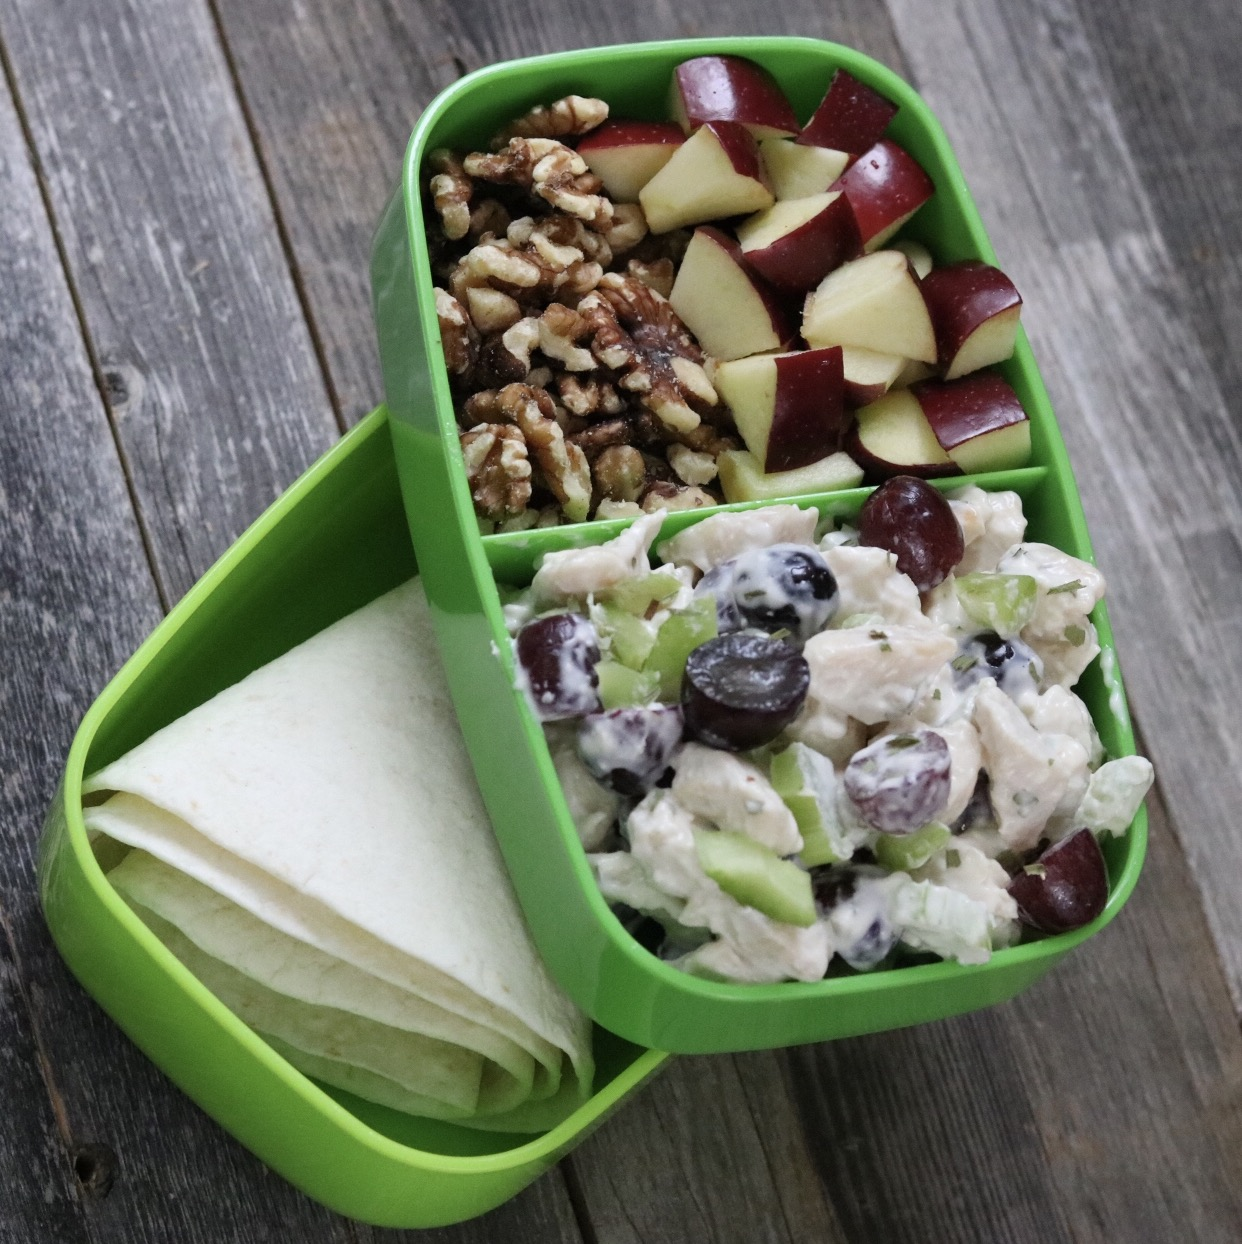 green bento boz with chicken salad, apples, and walnuts